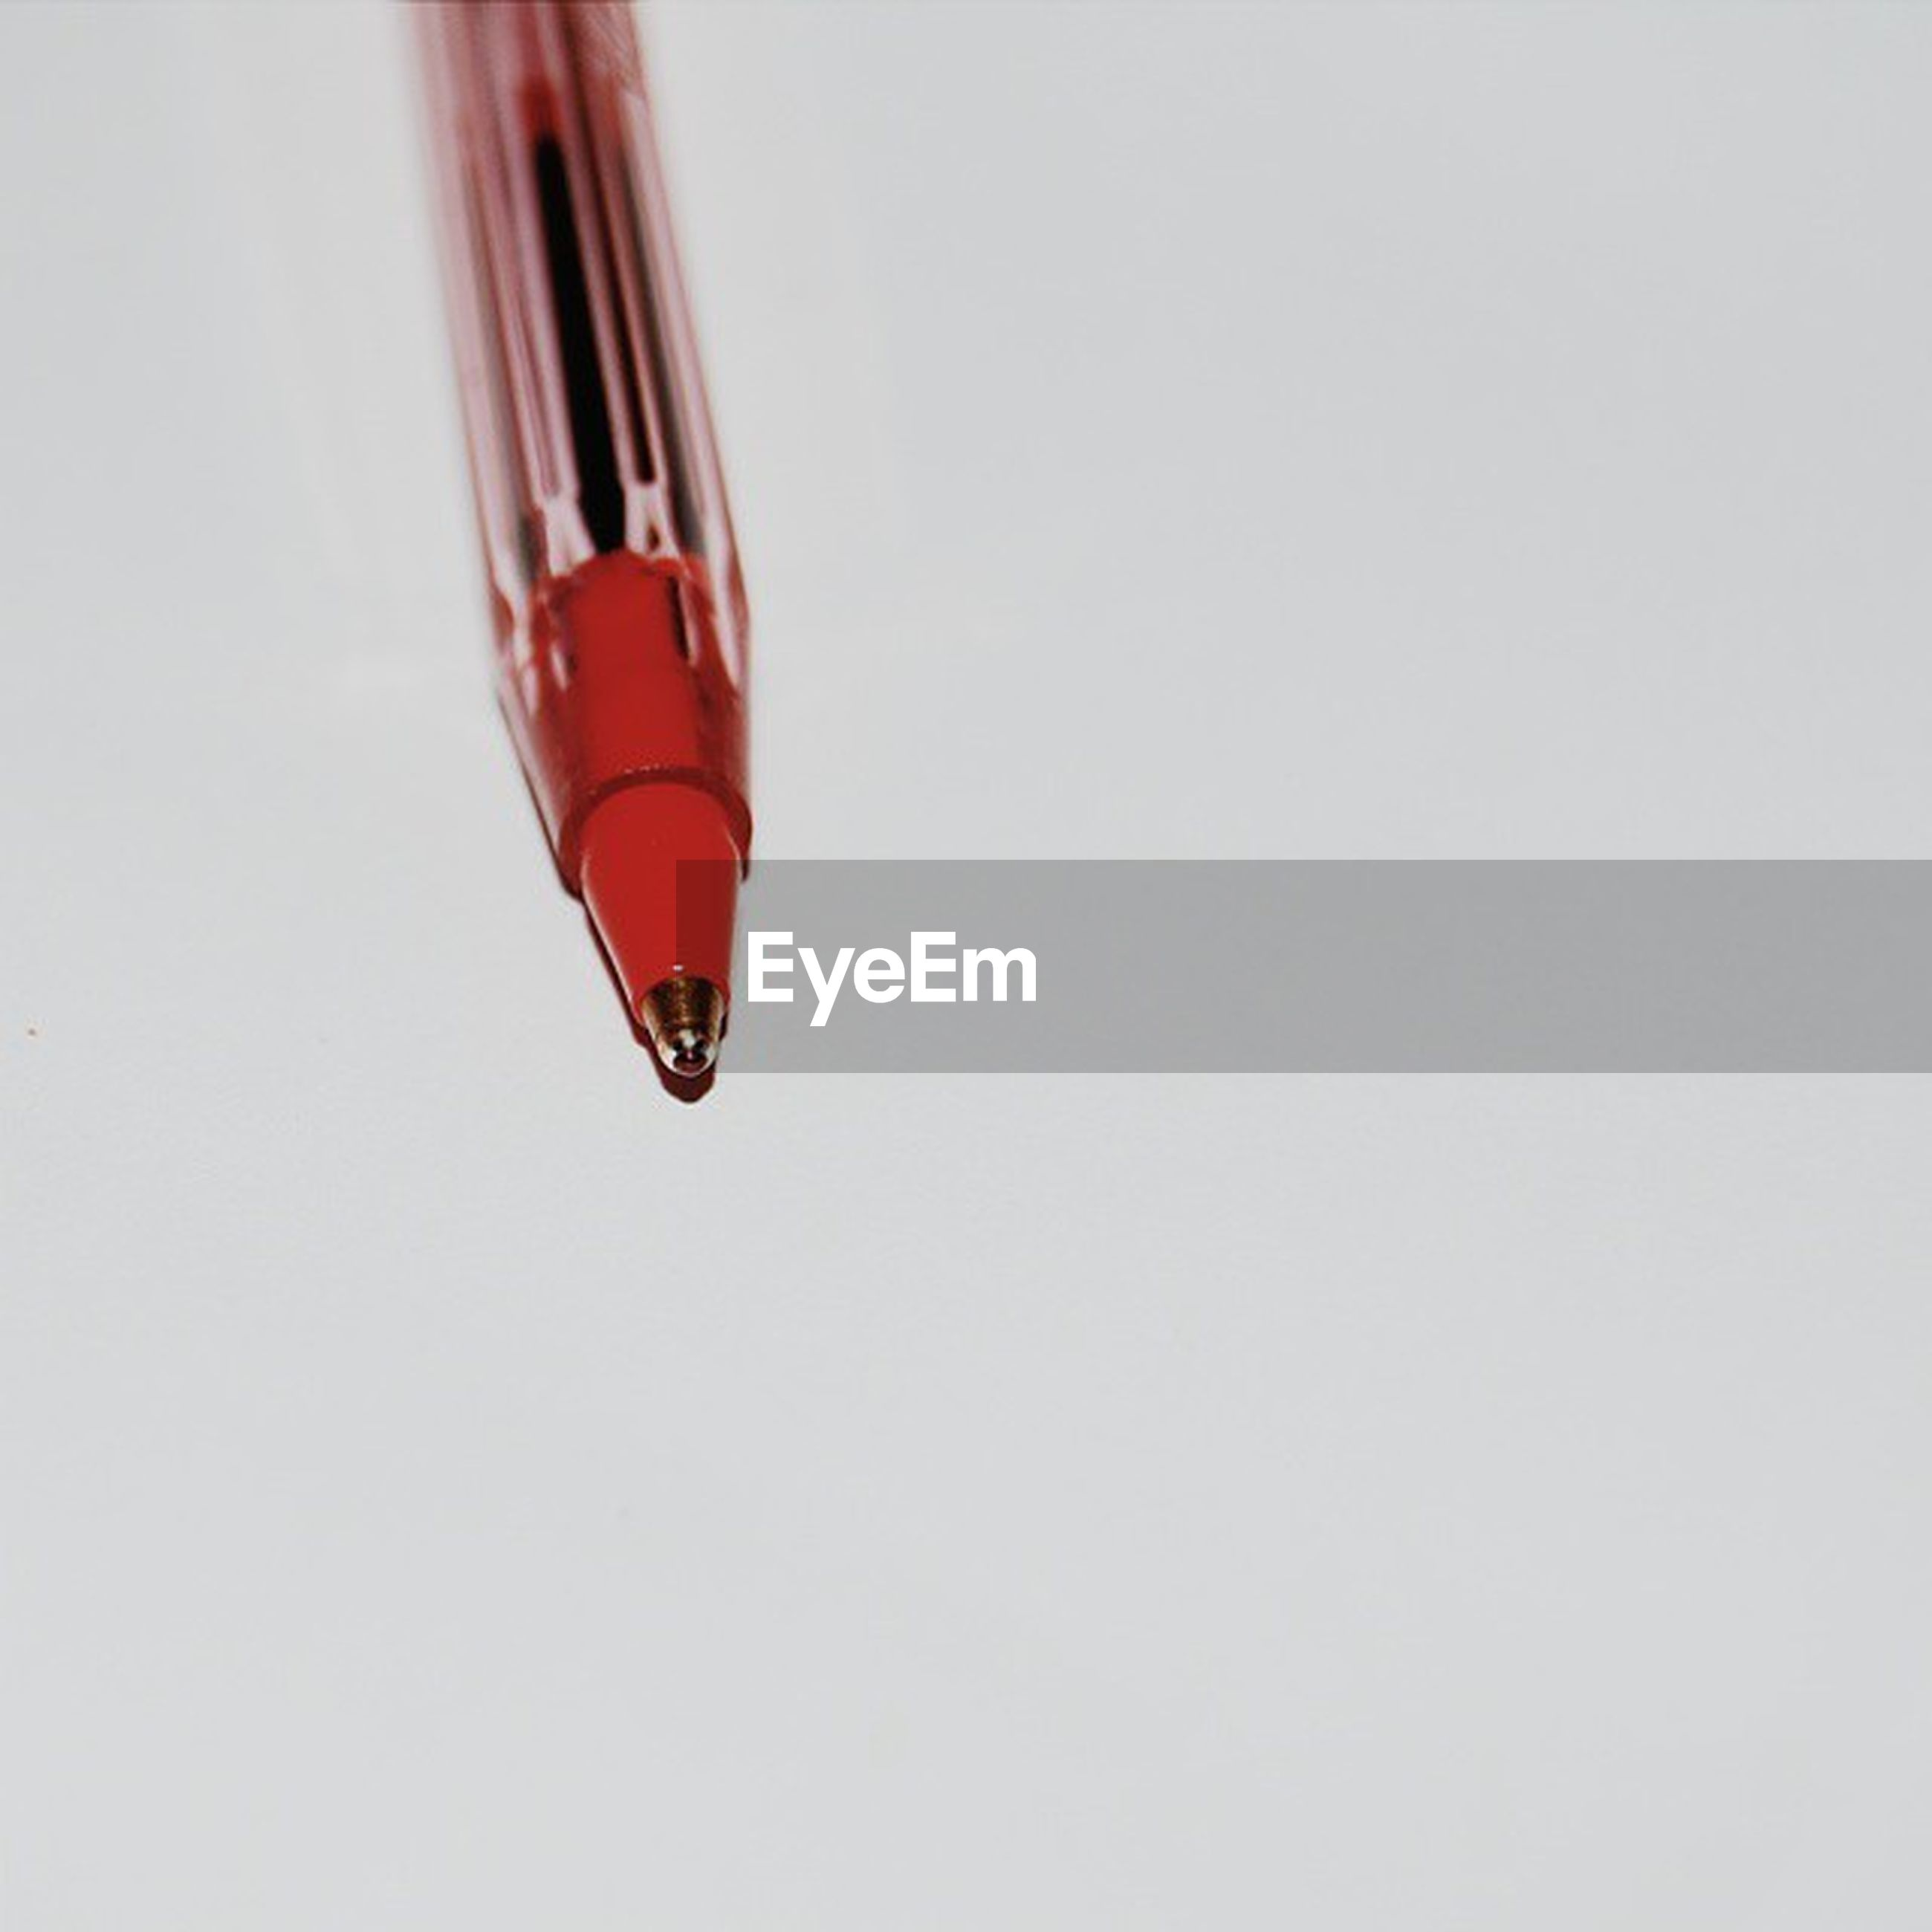 copy space, red, studio shot, white background, still life, clear sky, close-up, no people, single object, low angle view, simplicity, multi colored, day, part of, two objects, outdoors, cut out, three objects, glass - material